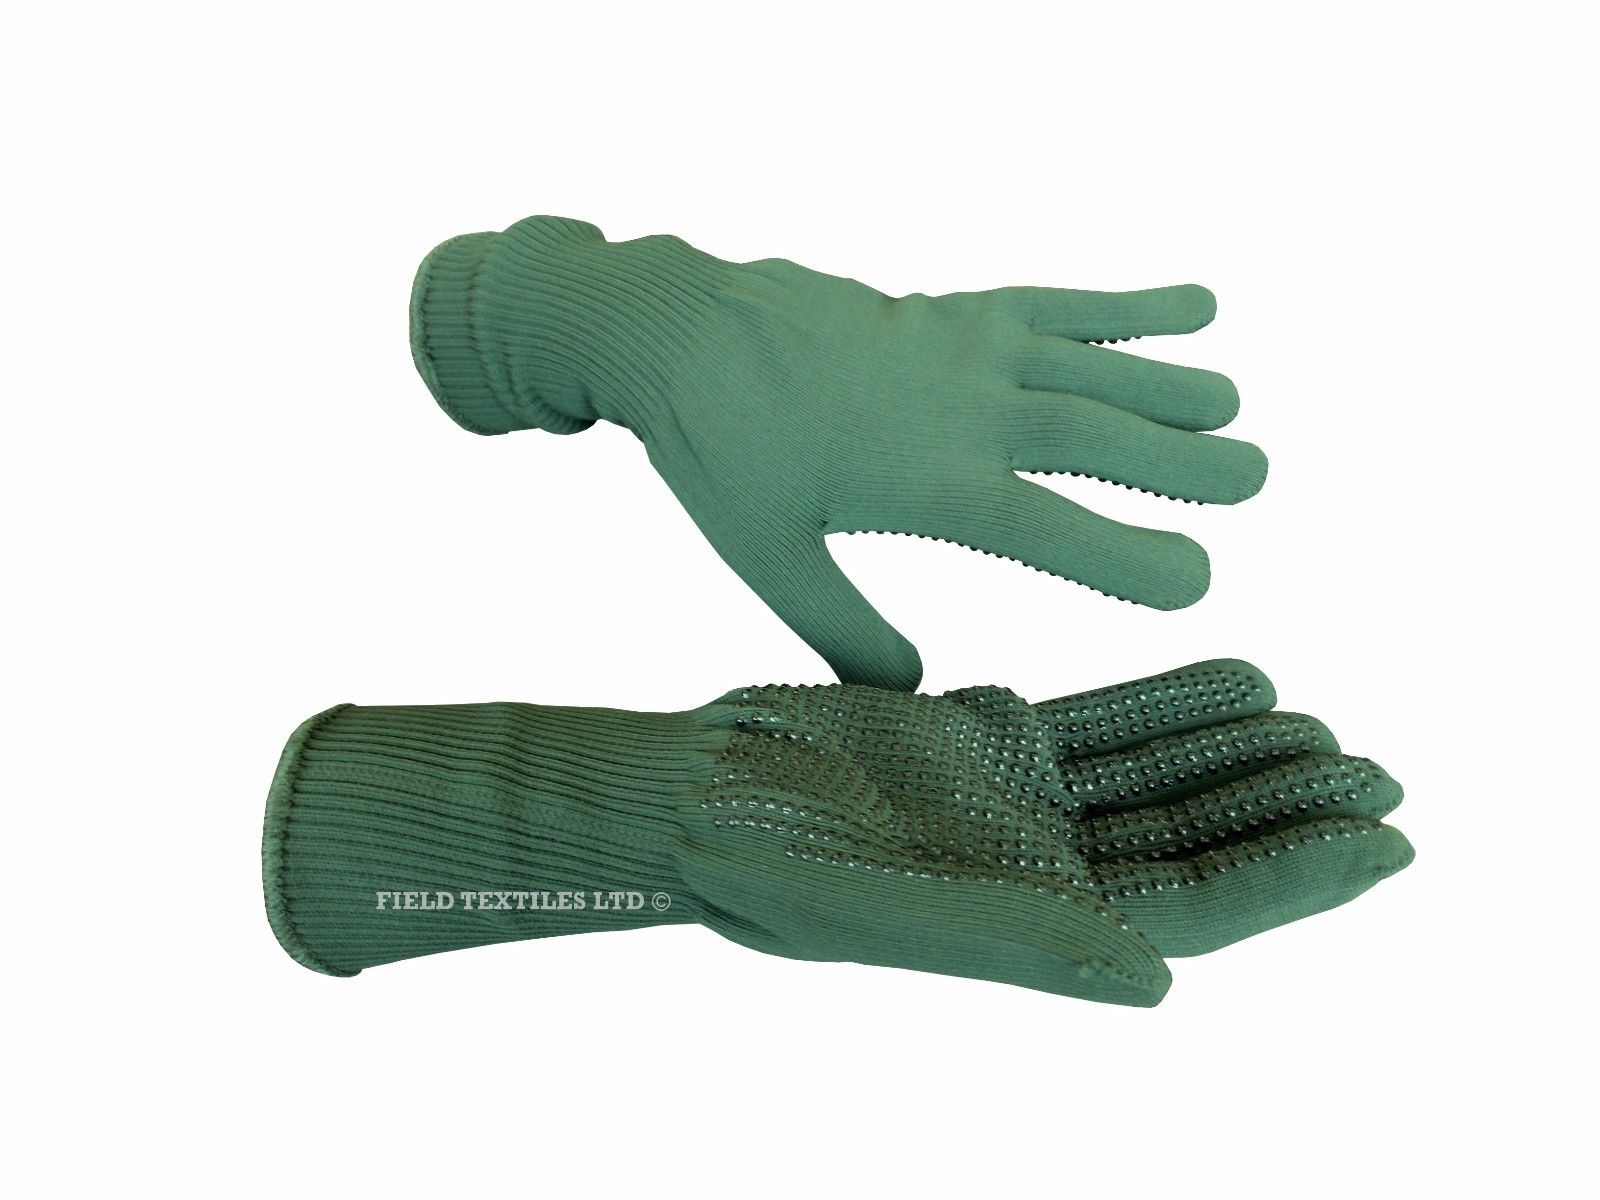 Lot 17 - PACK OF 20 - CONTACT GLOVES SIZE 9 - NEW